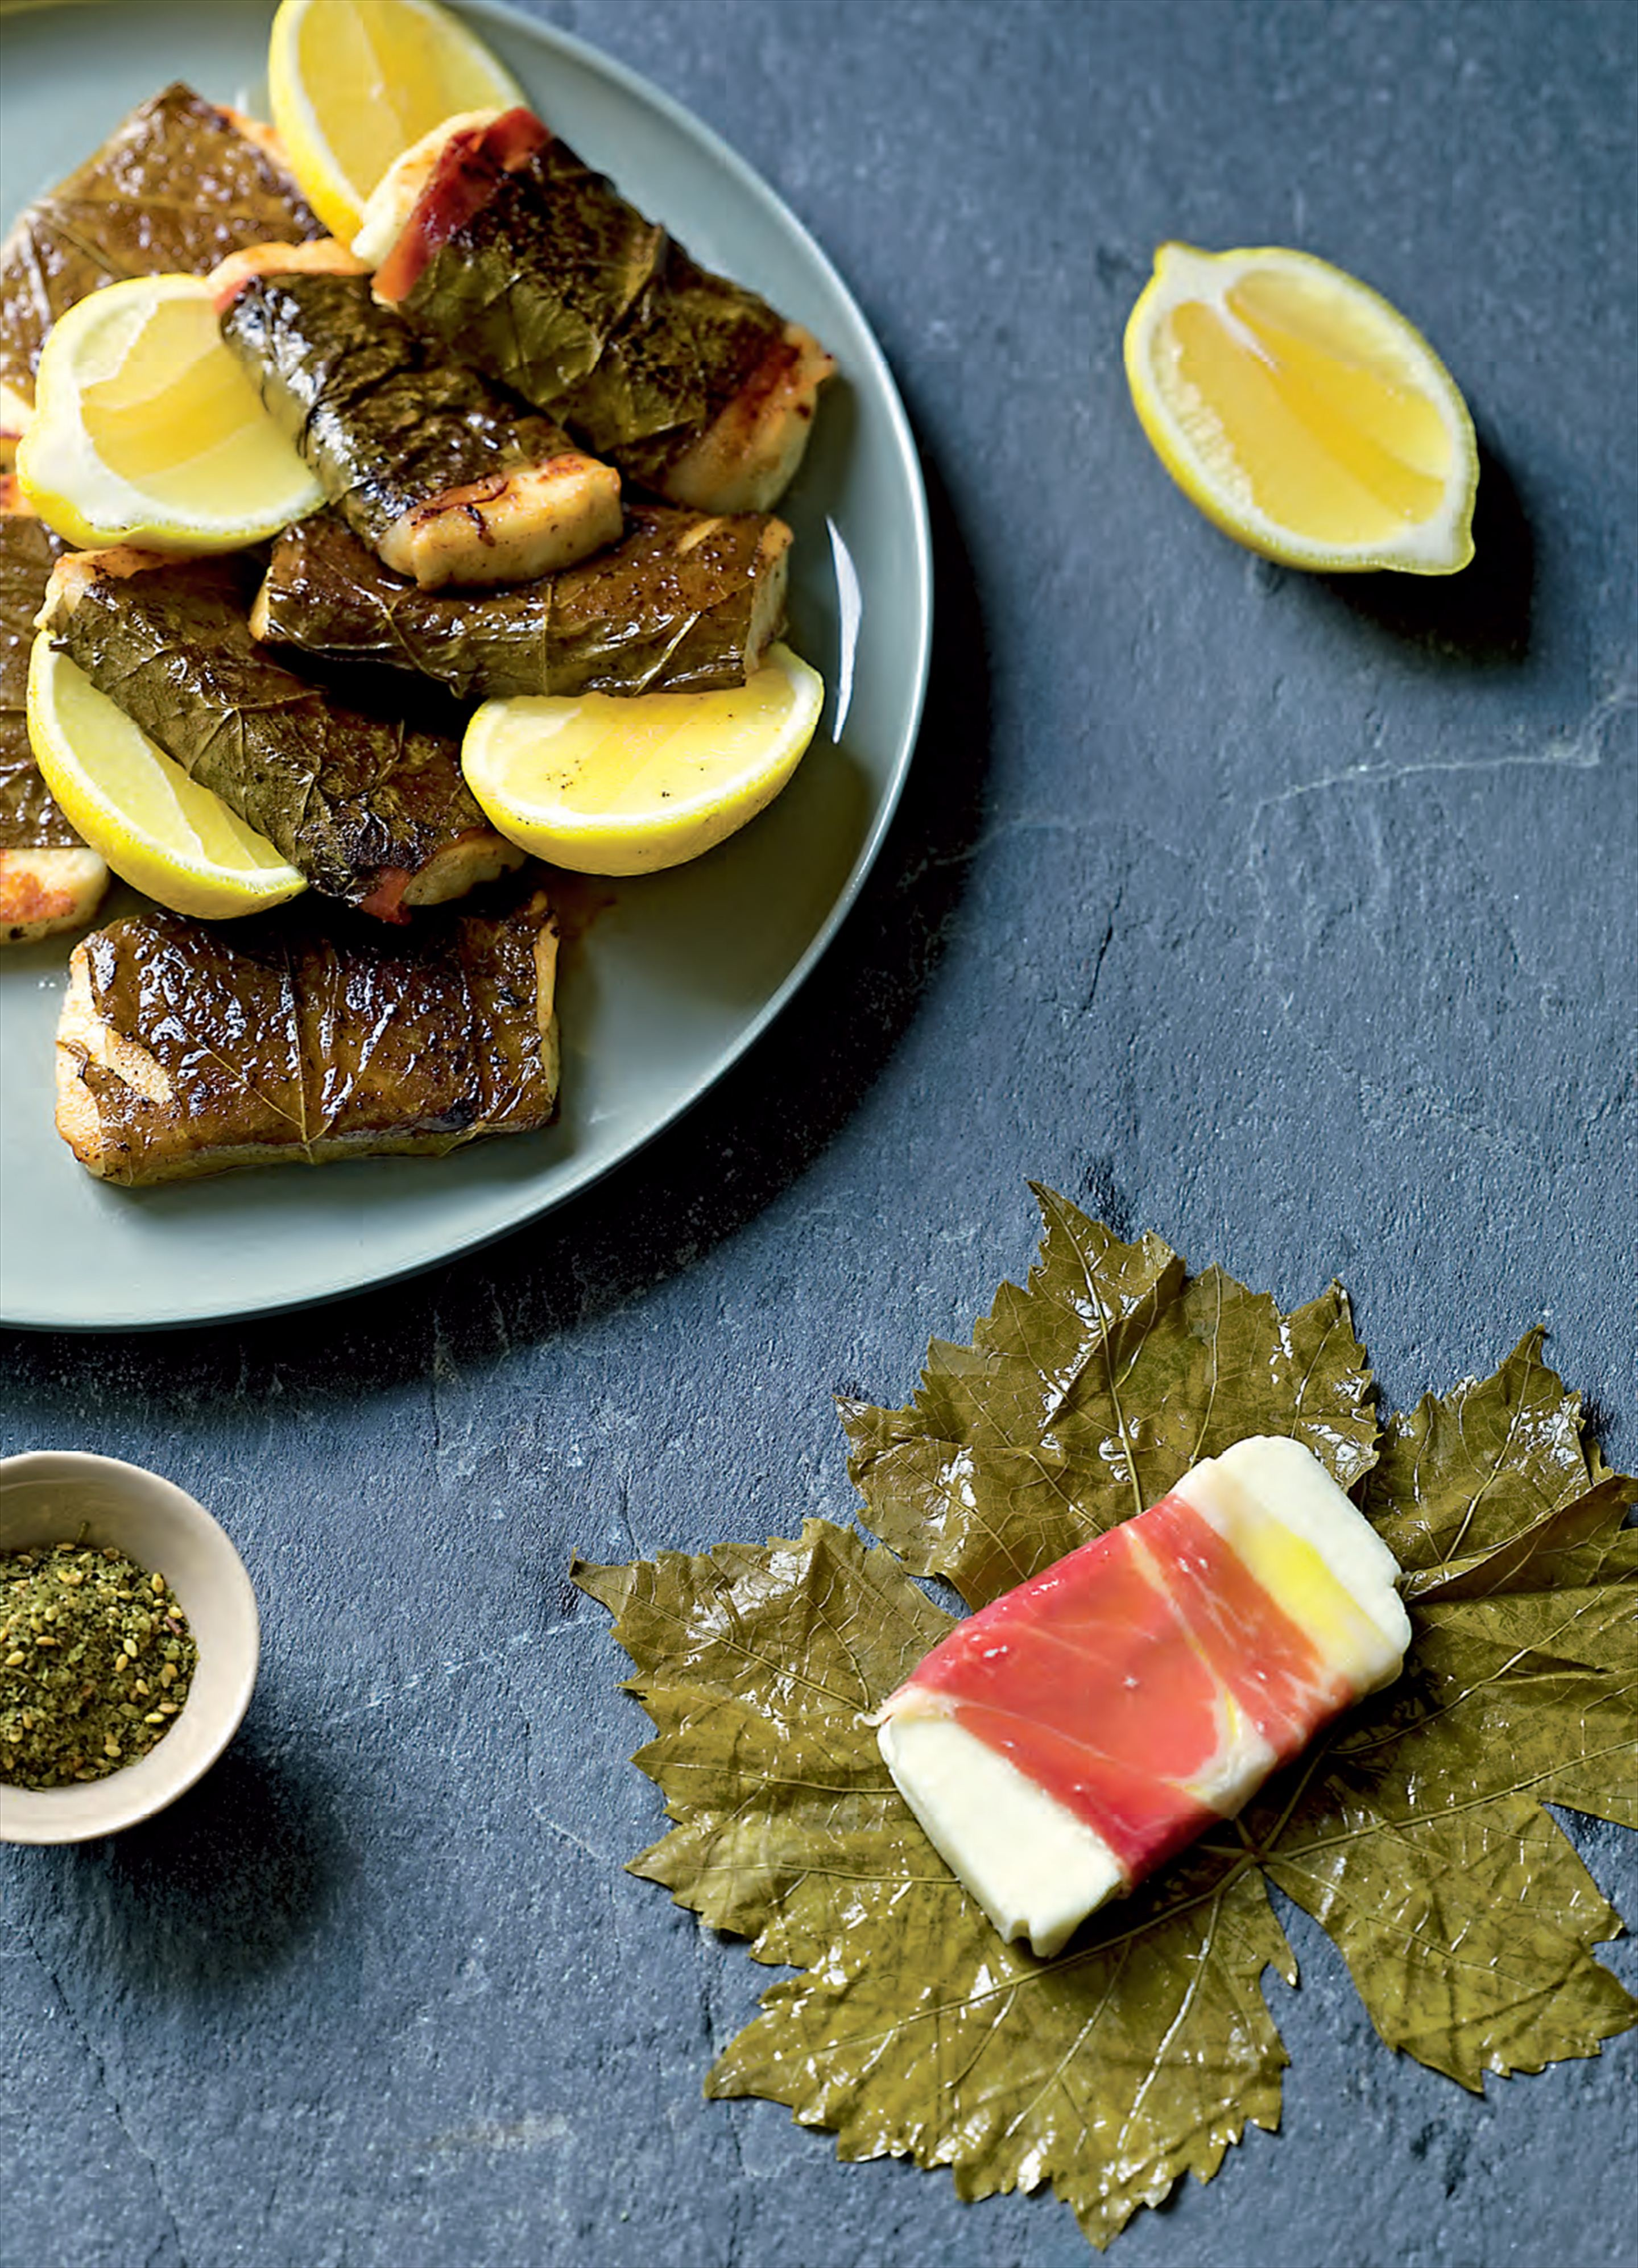 Haloumi grilled in vine leaves